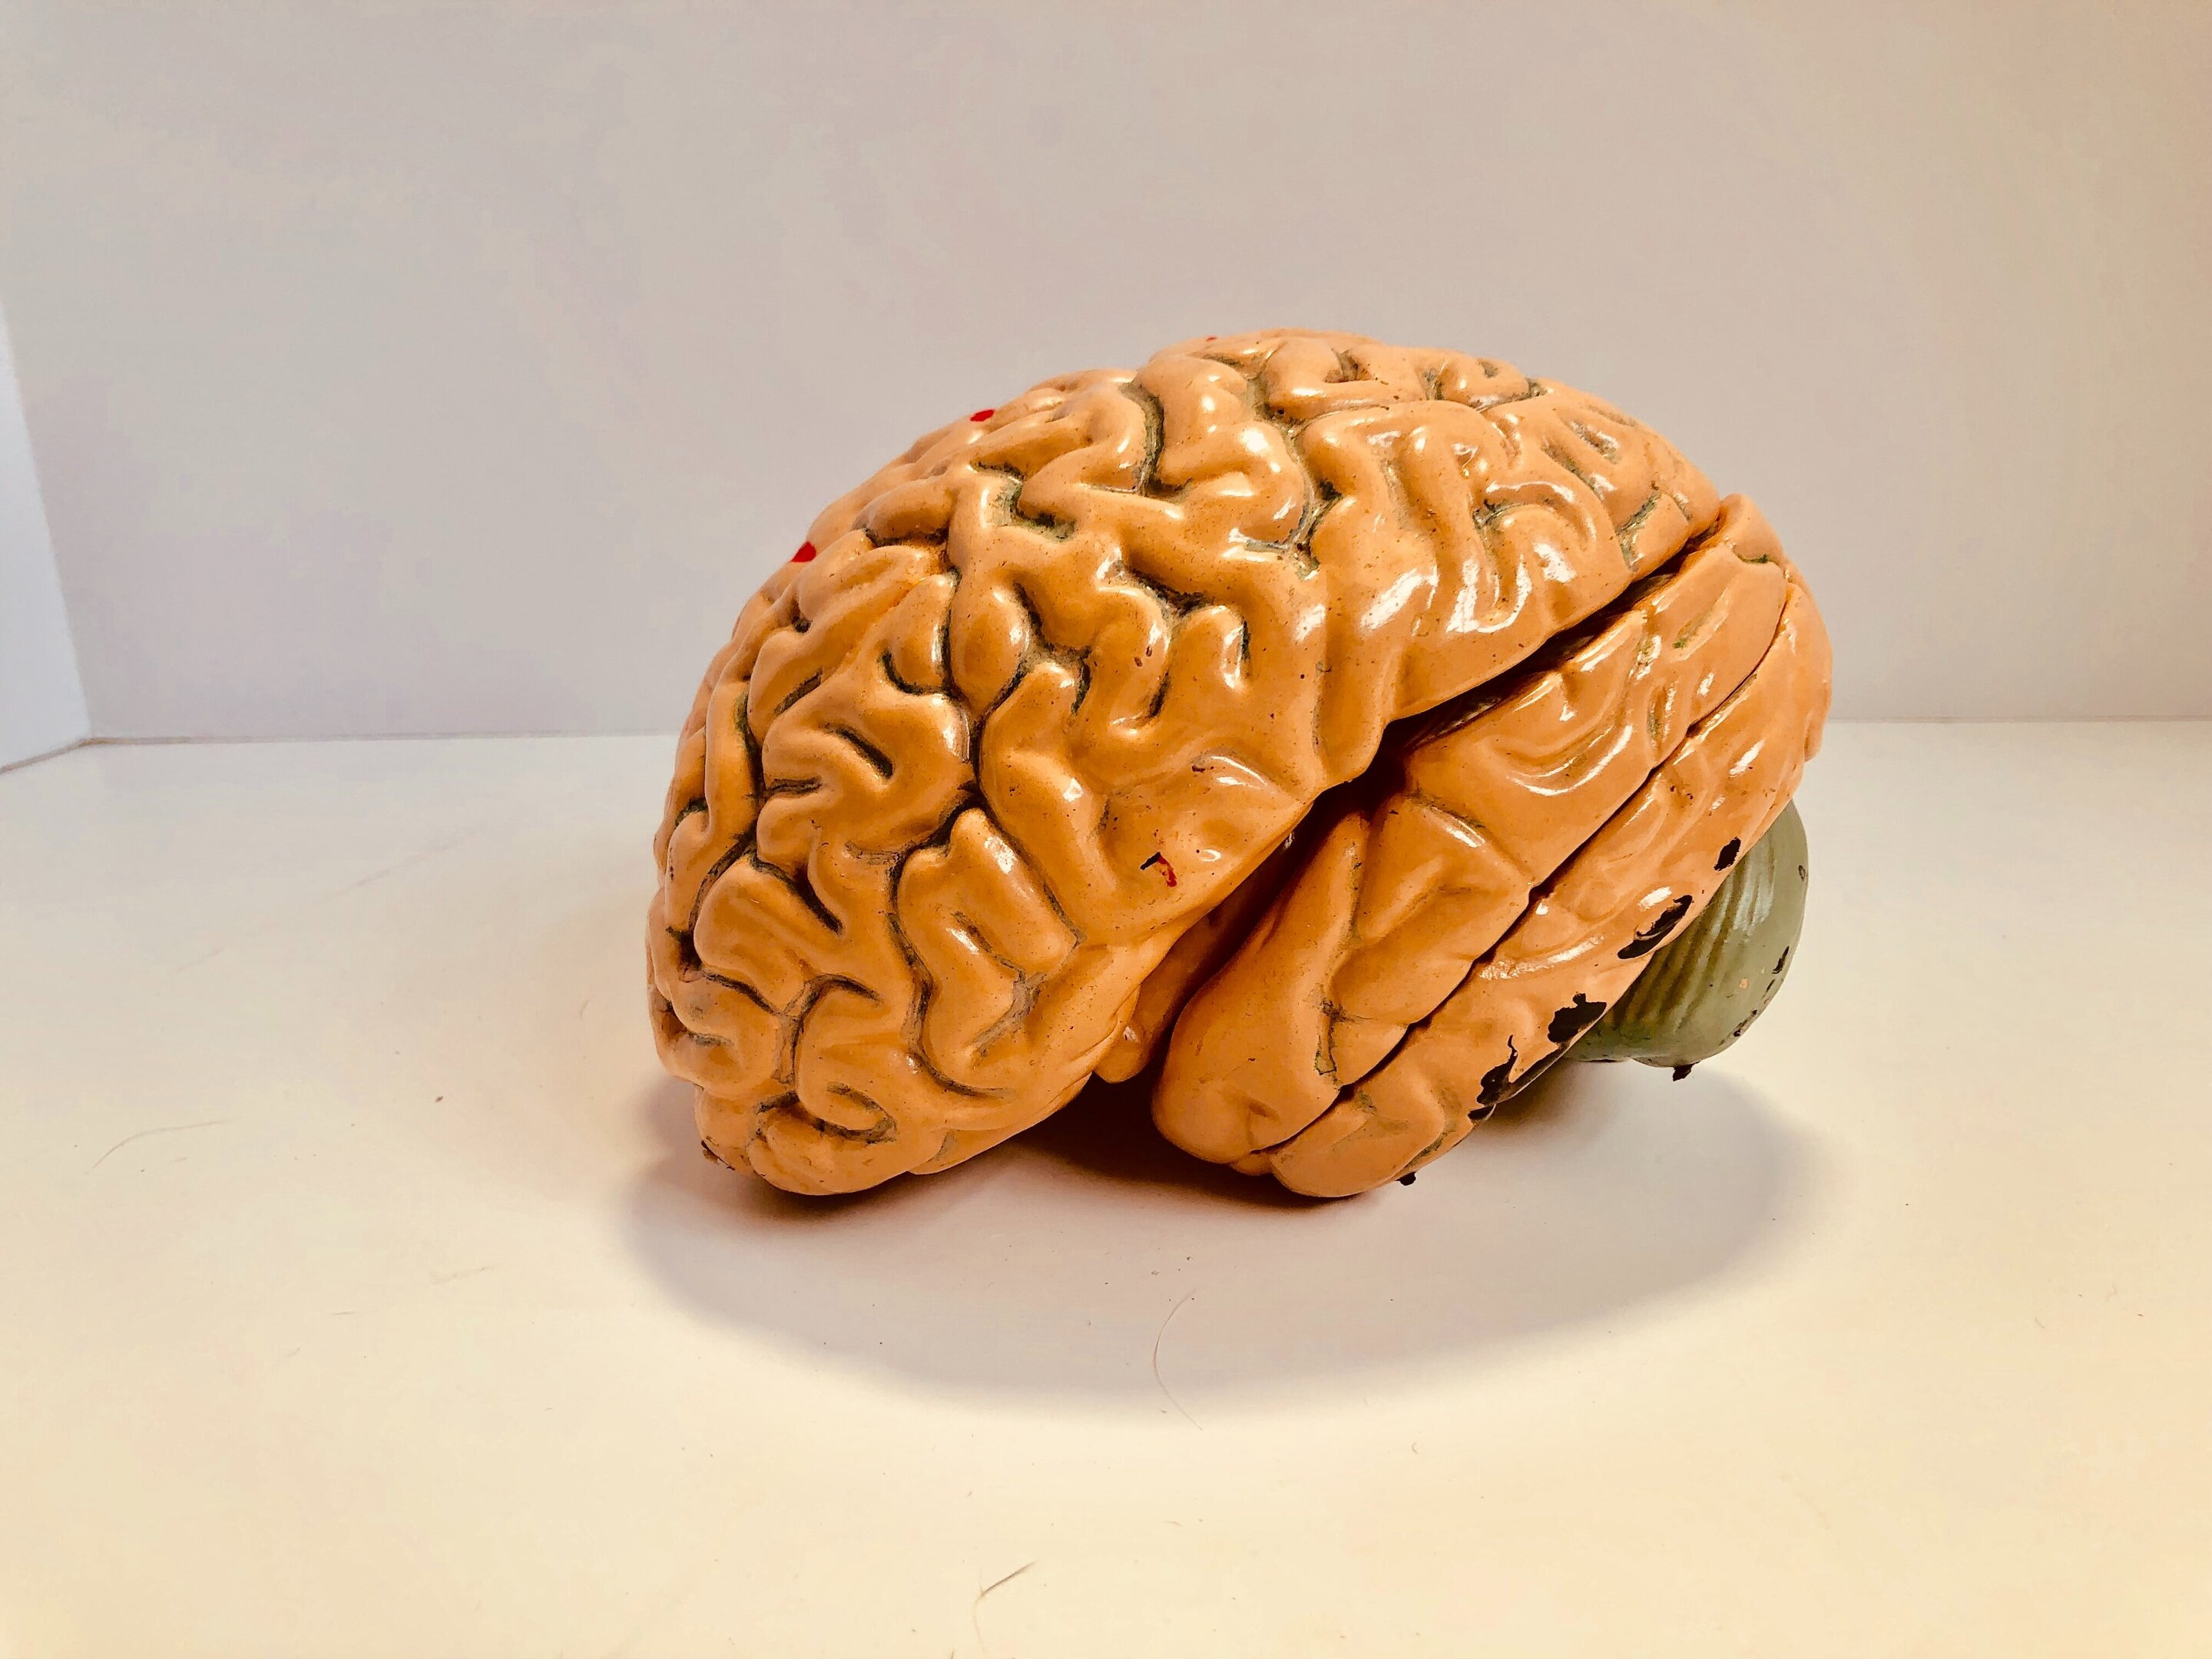 Human brain and testis found to have the highest number of common proteins